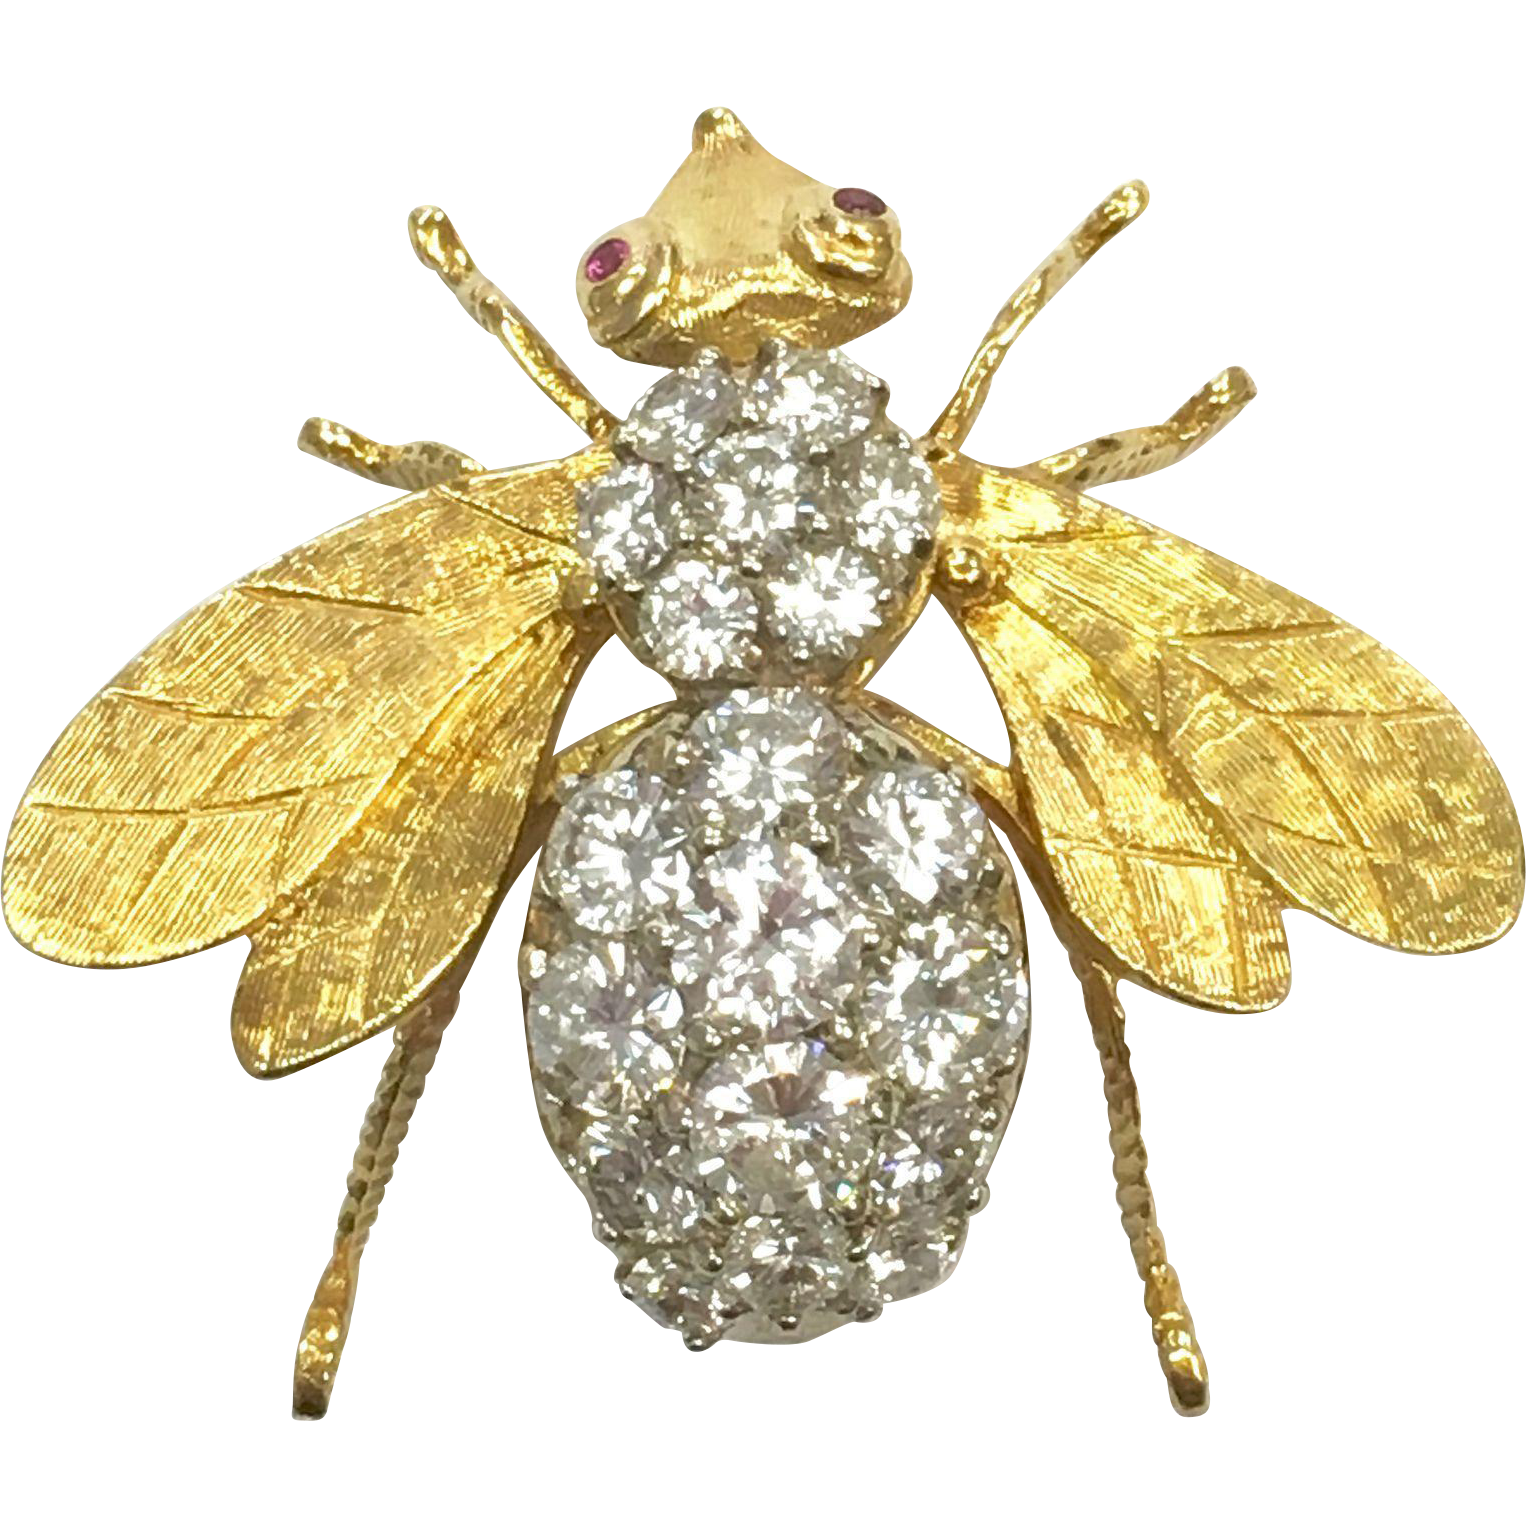 Vintage custom made 18 K yellow gold bumblebee pin or pendant with 3.5 carats of diamonds and appraisal